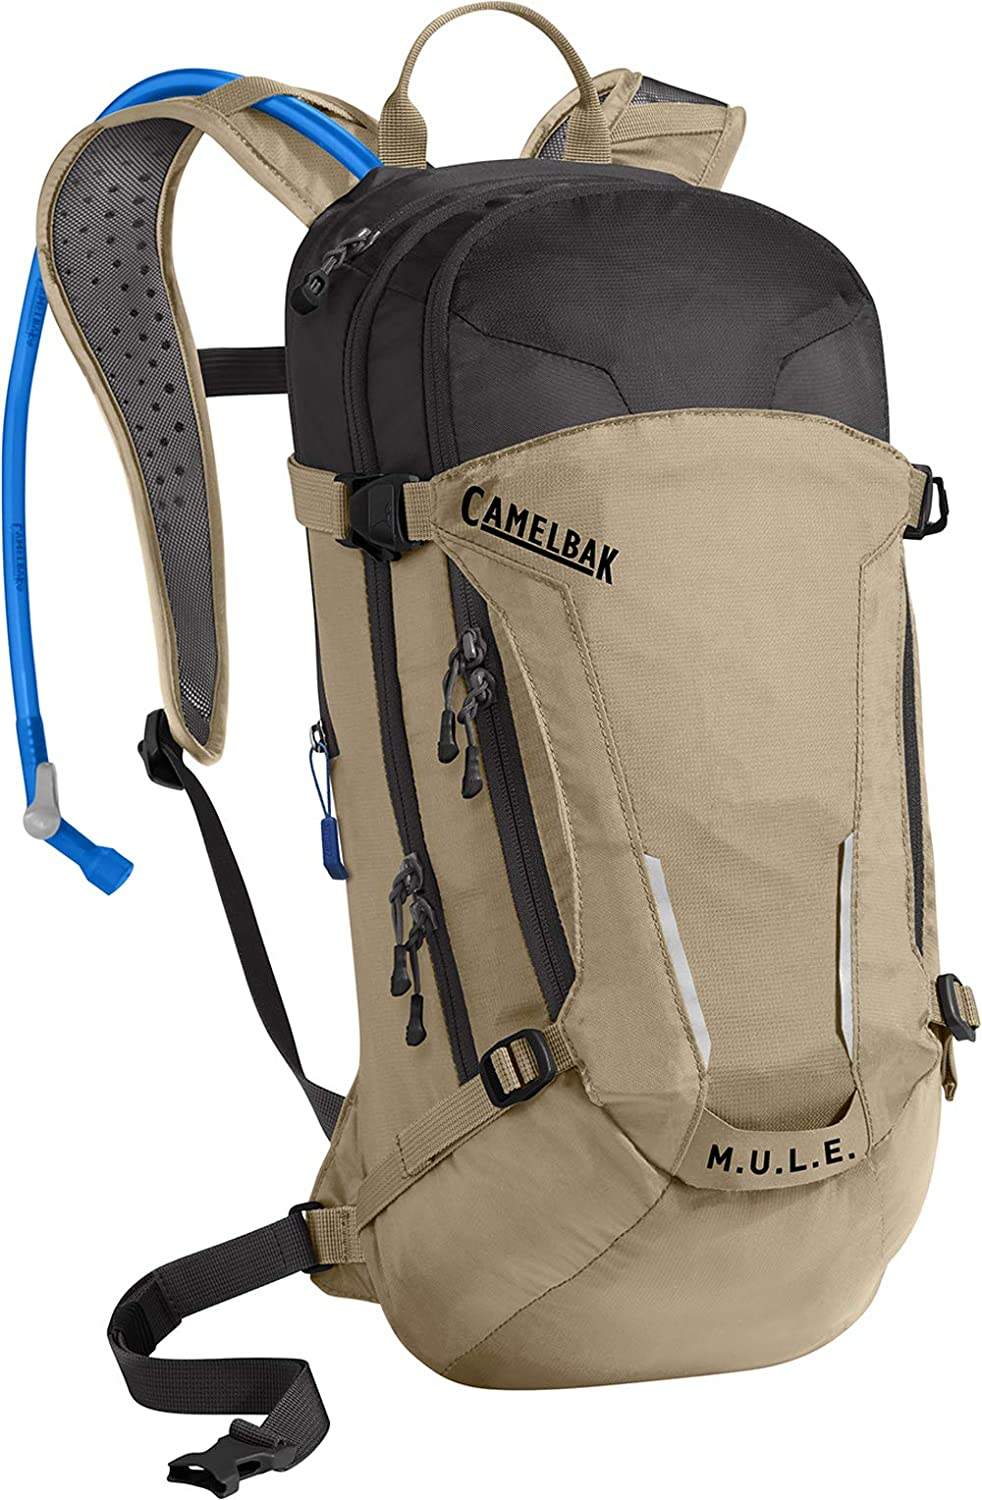 Top 10 Best Camelbak For Hiking Reviews 7